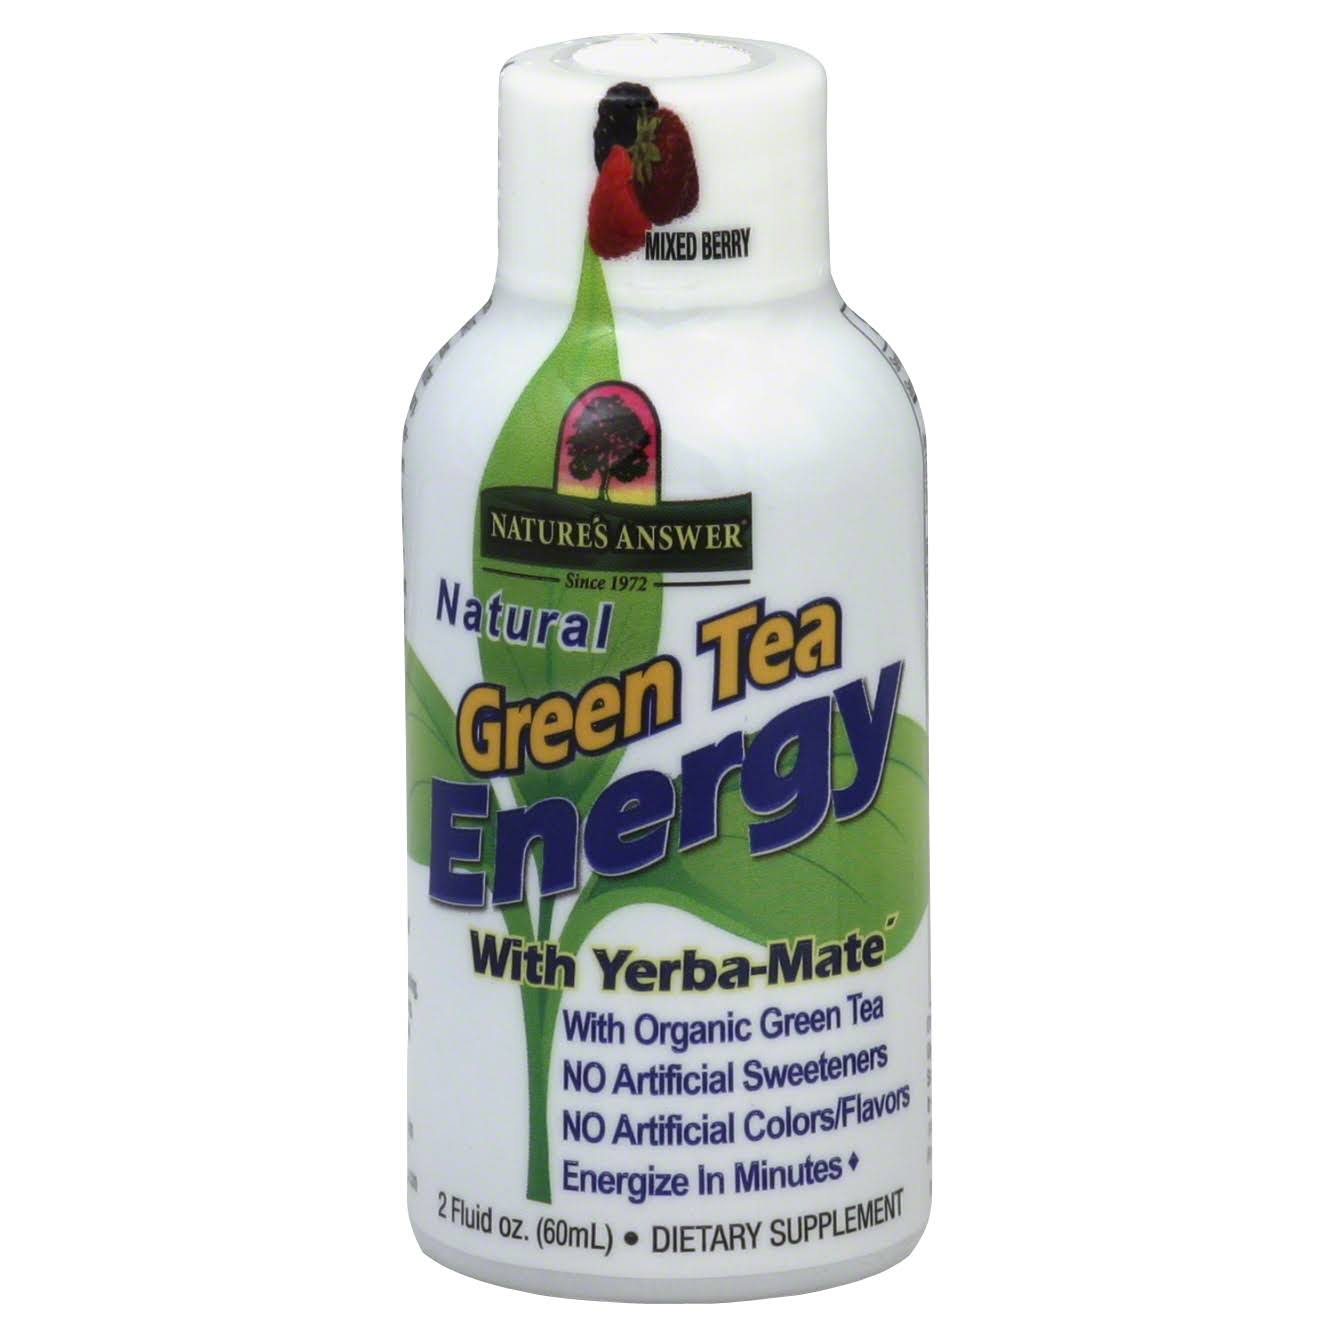 Nature's Answer Green Tea Energy